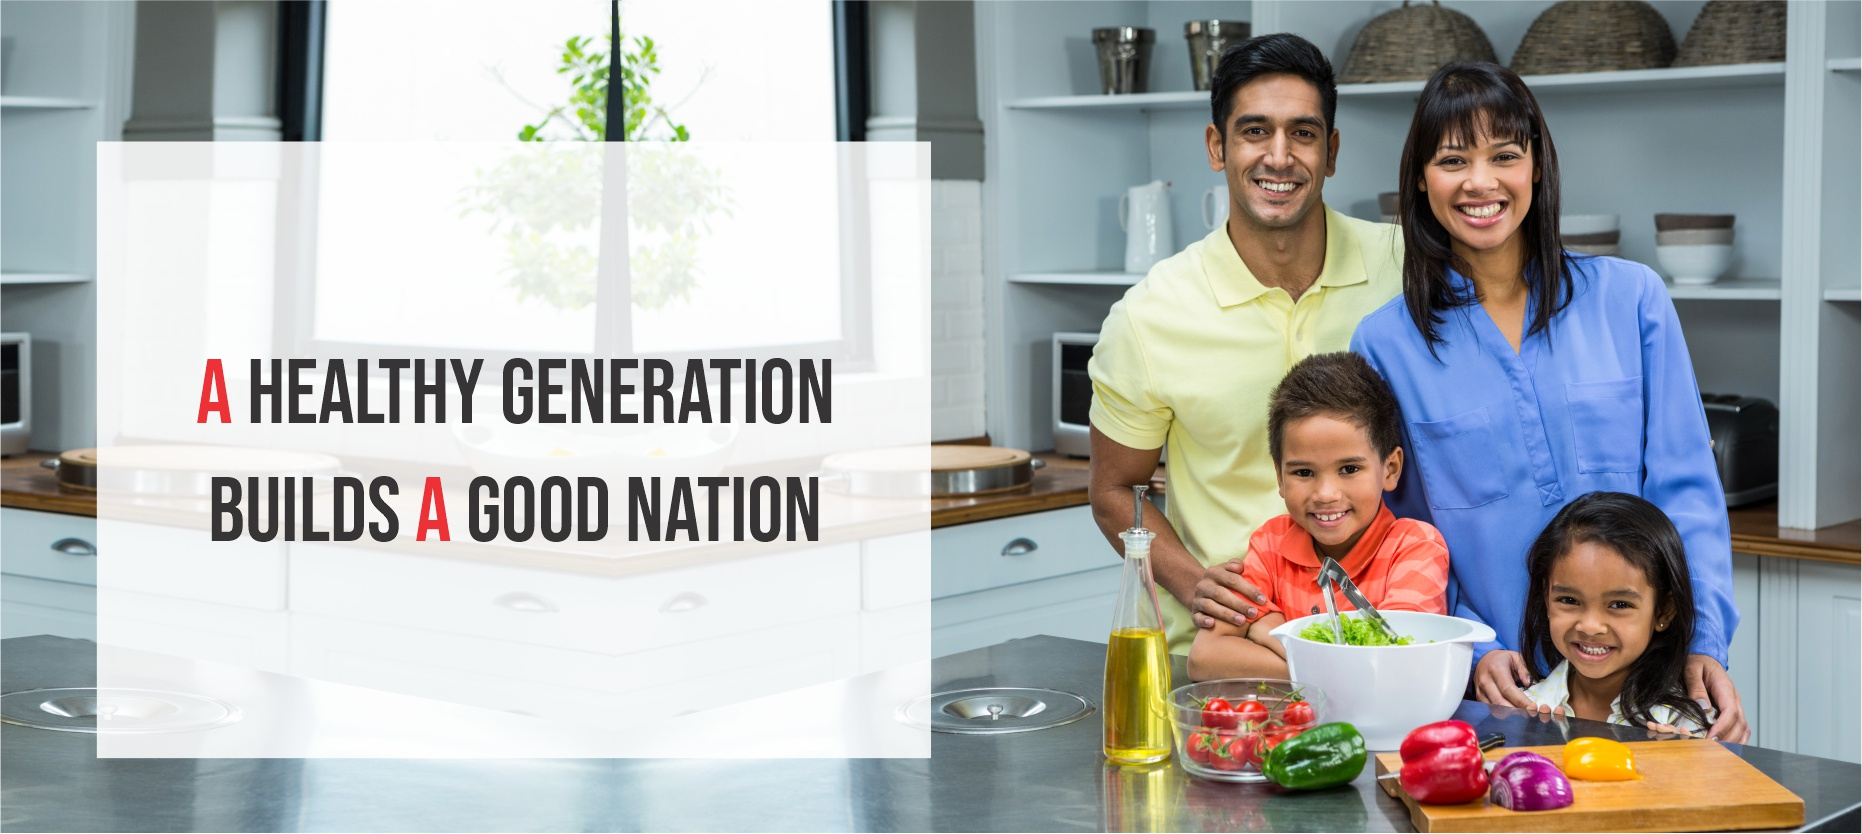 A Healthy Generation Builds a Good Nation